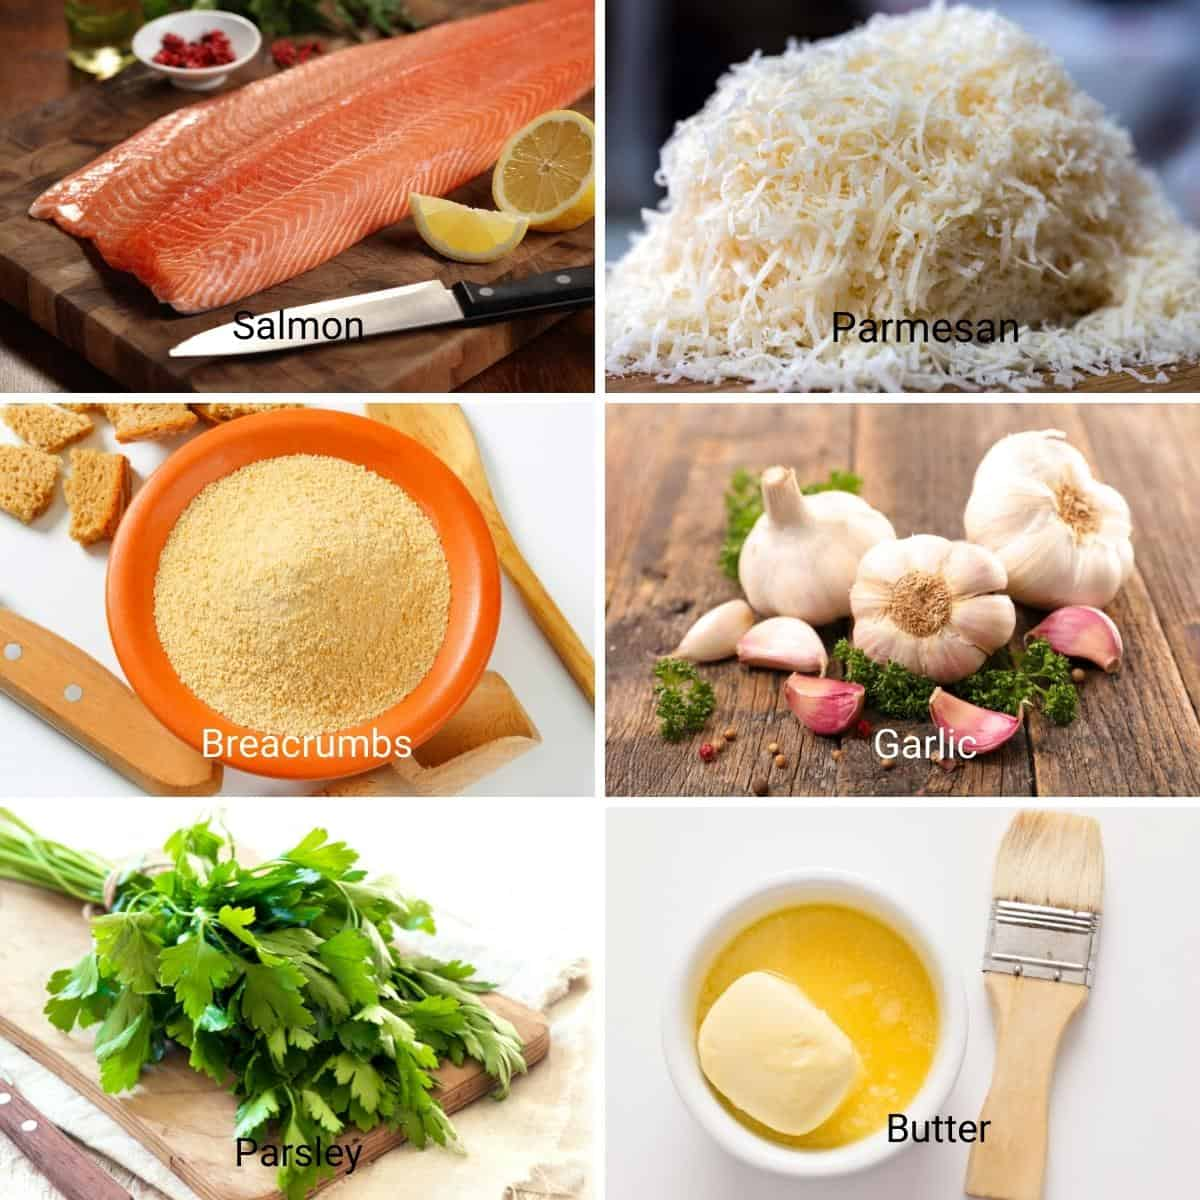 Ingredients for Baked Salmon with Parmesan.